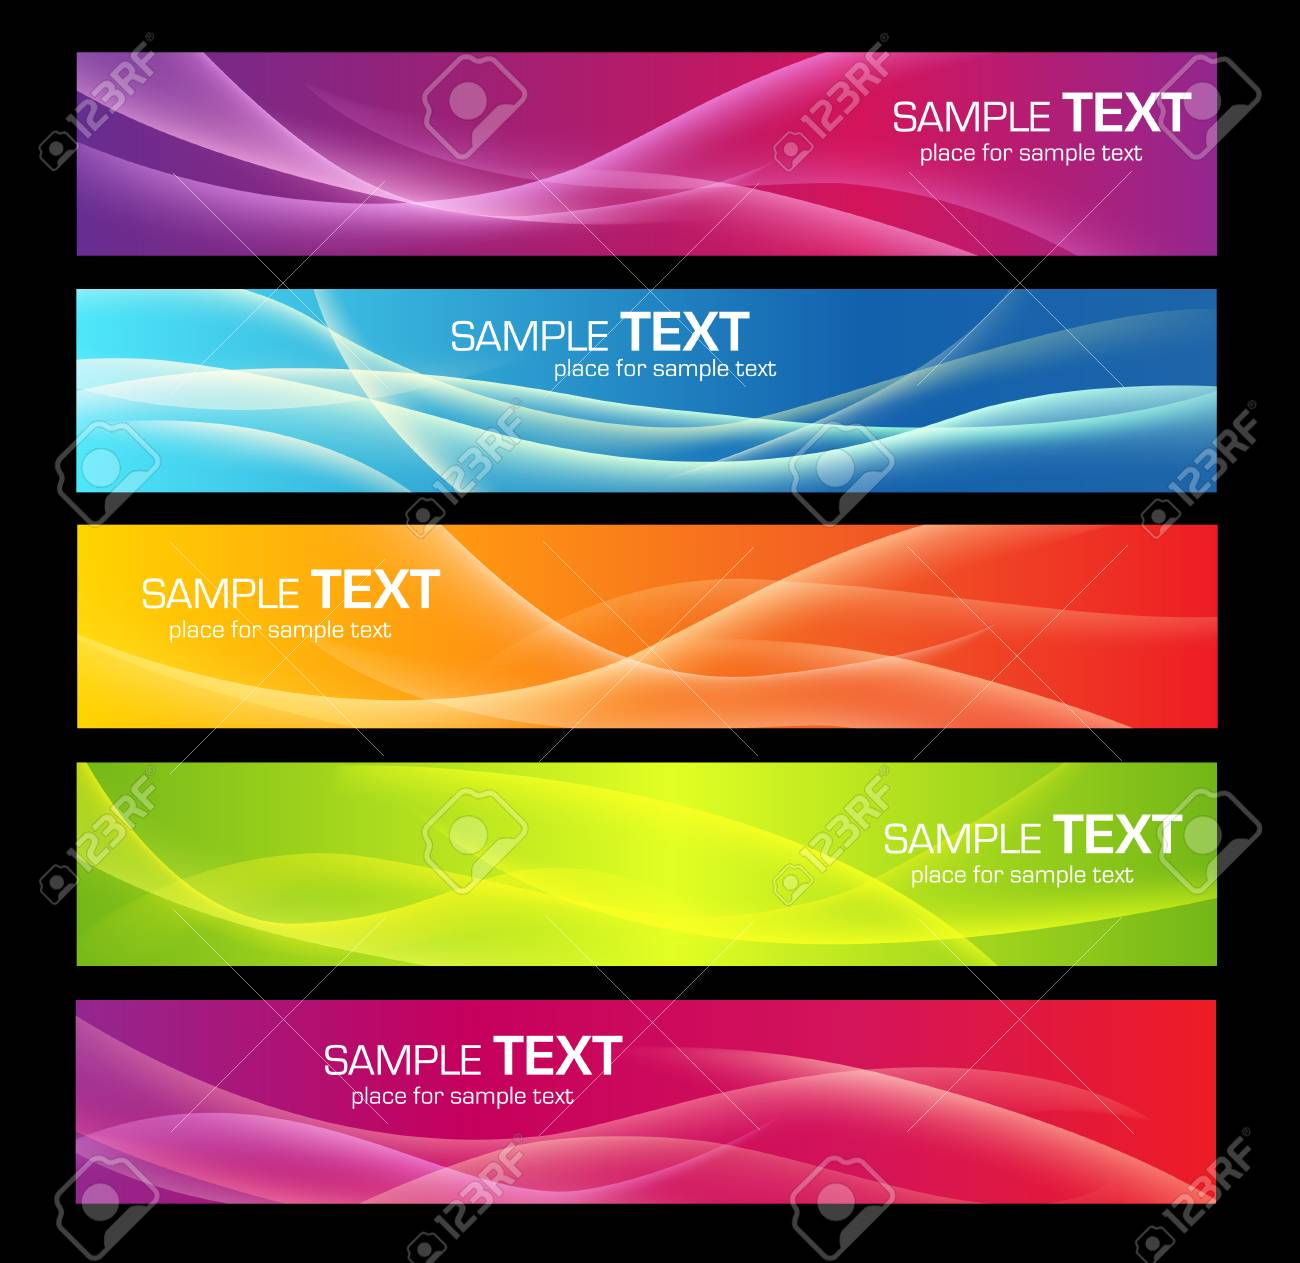 Five colorful banners for web or print - 36554160